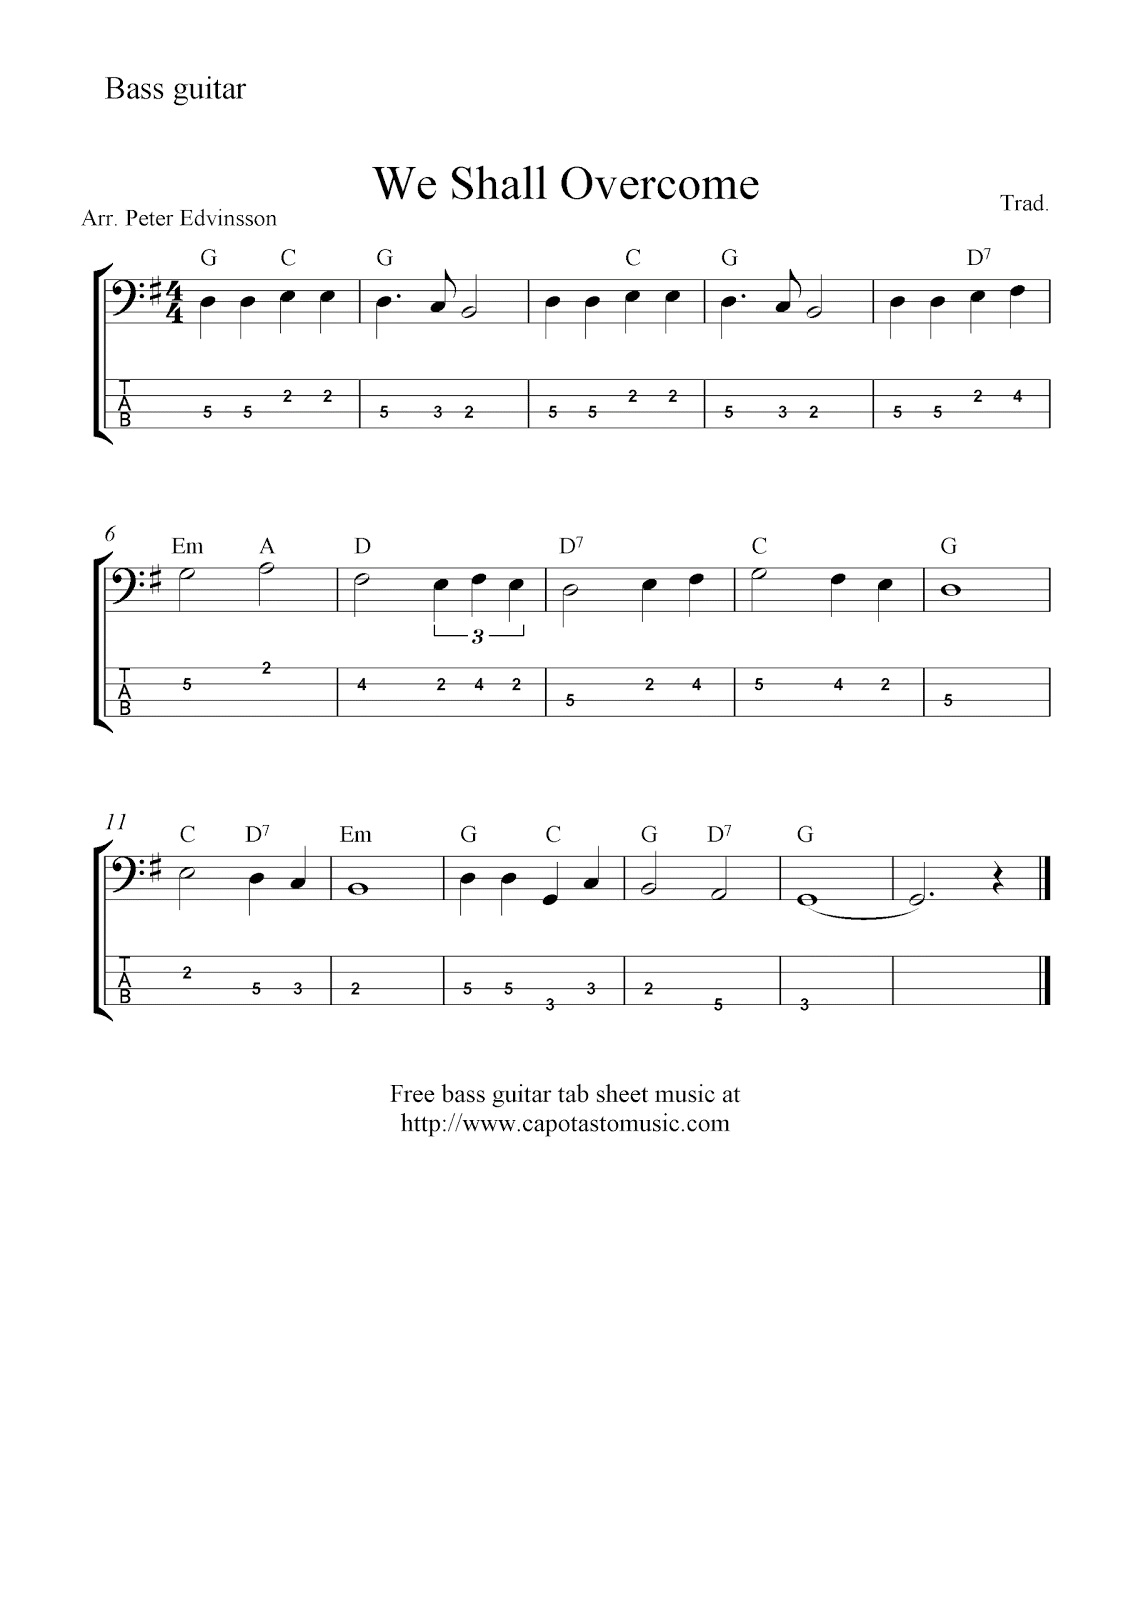 Free bass guitar tab sheet music, We Shall Overcome